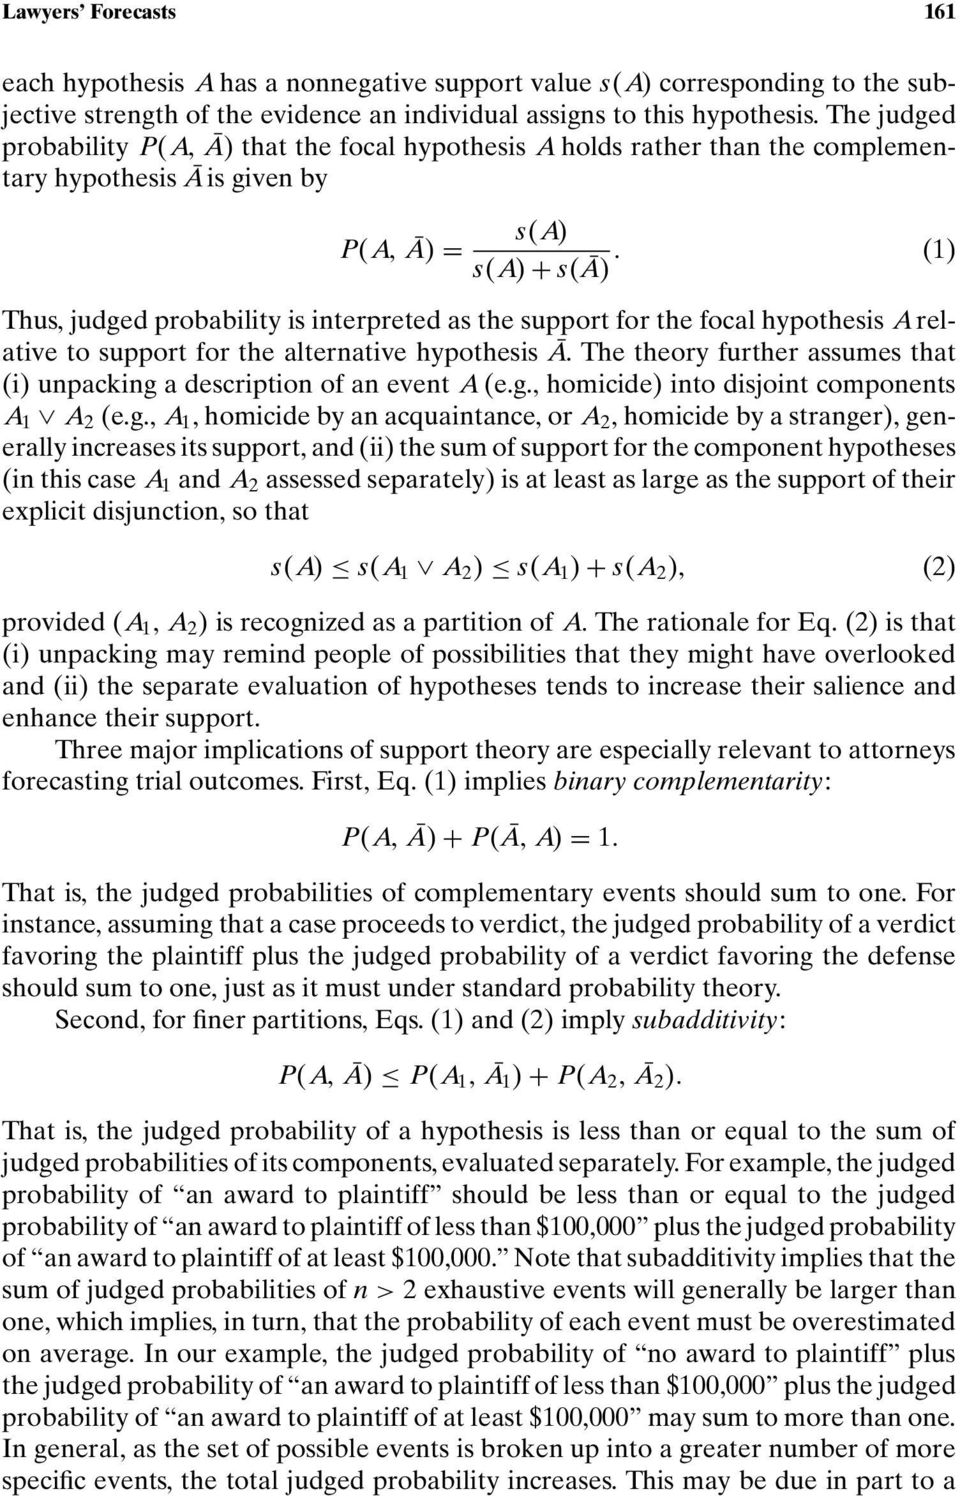 (1) Thus, judged probability is interpreted as the support for the focal hypothesis Arelative to support for the alternative hypothesis Ā.